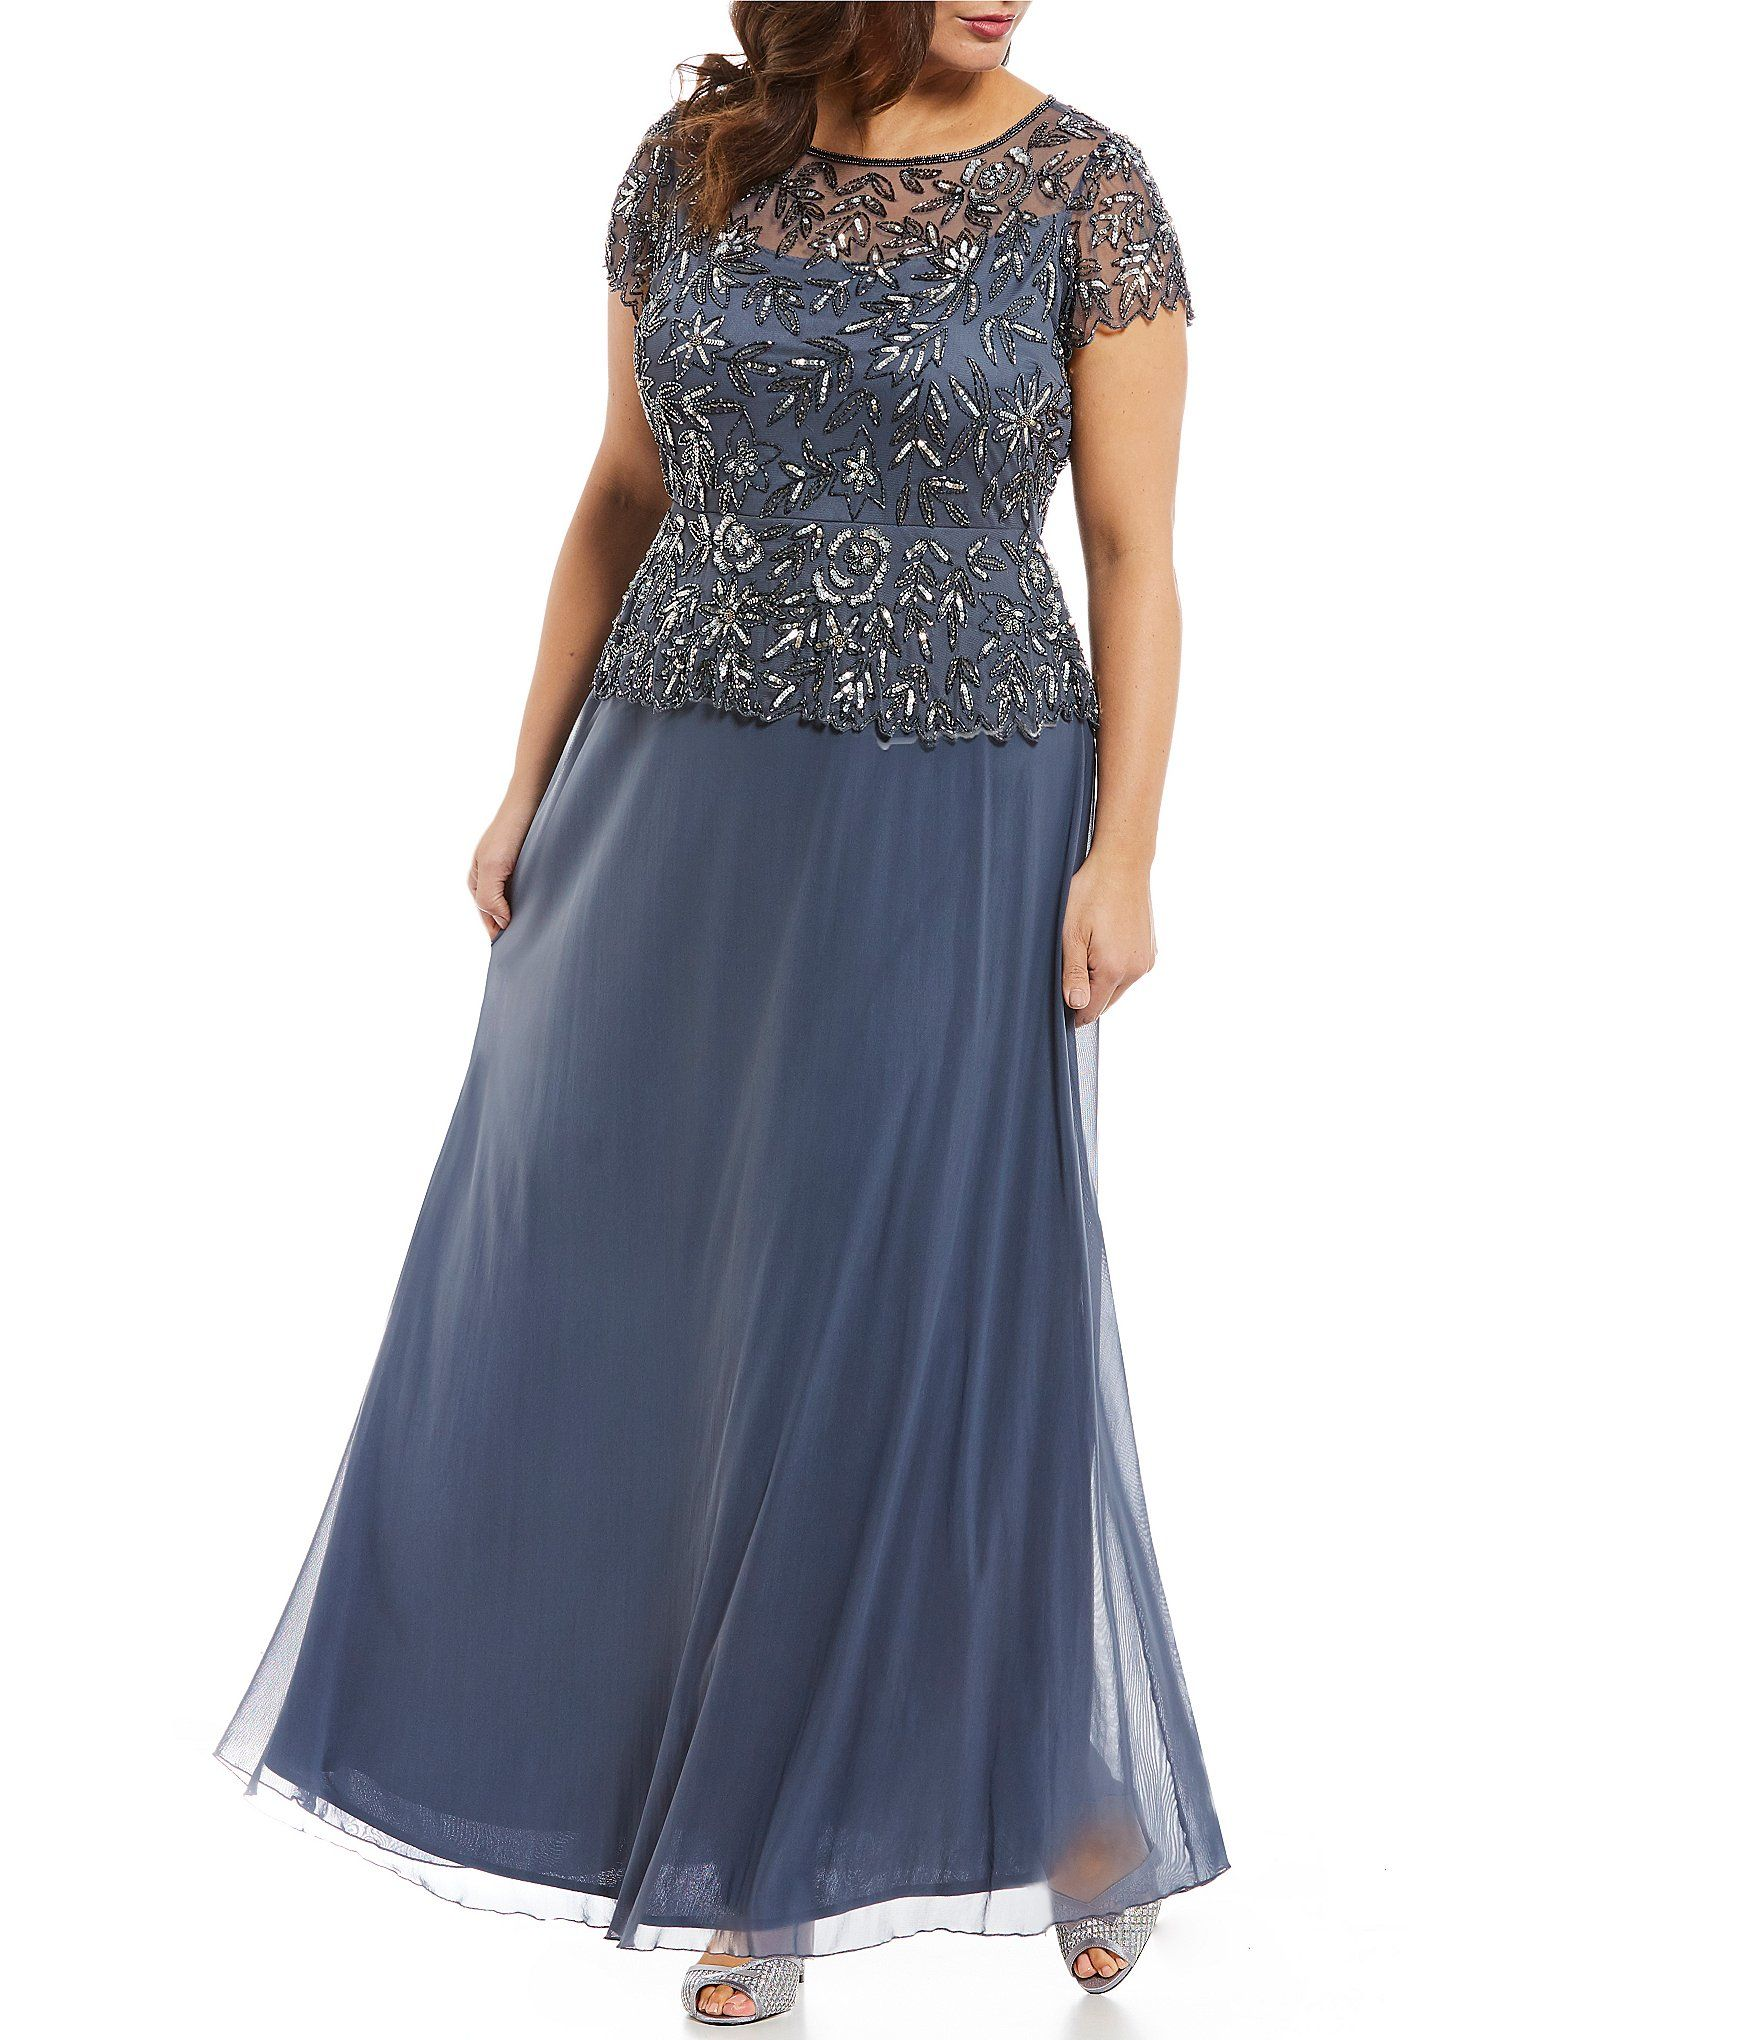 Dillards Plus Size Mother Of The Groom Dresses – DACC